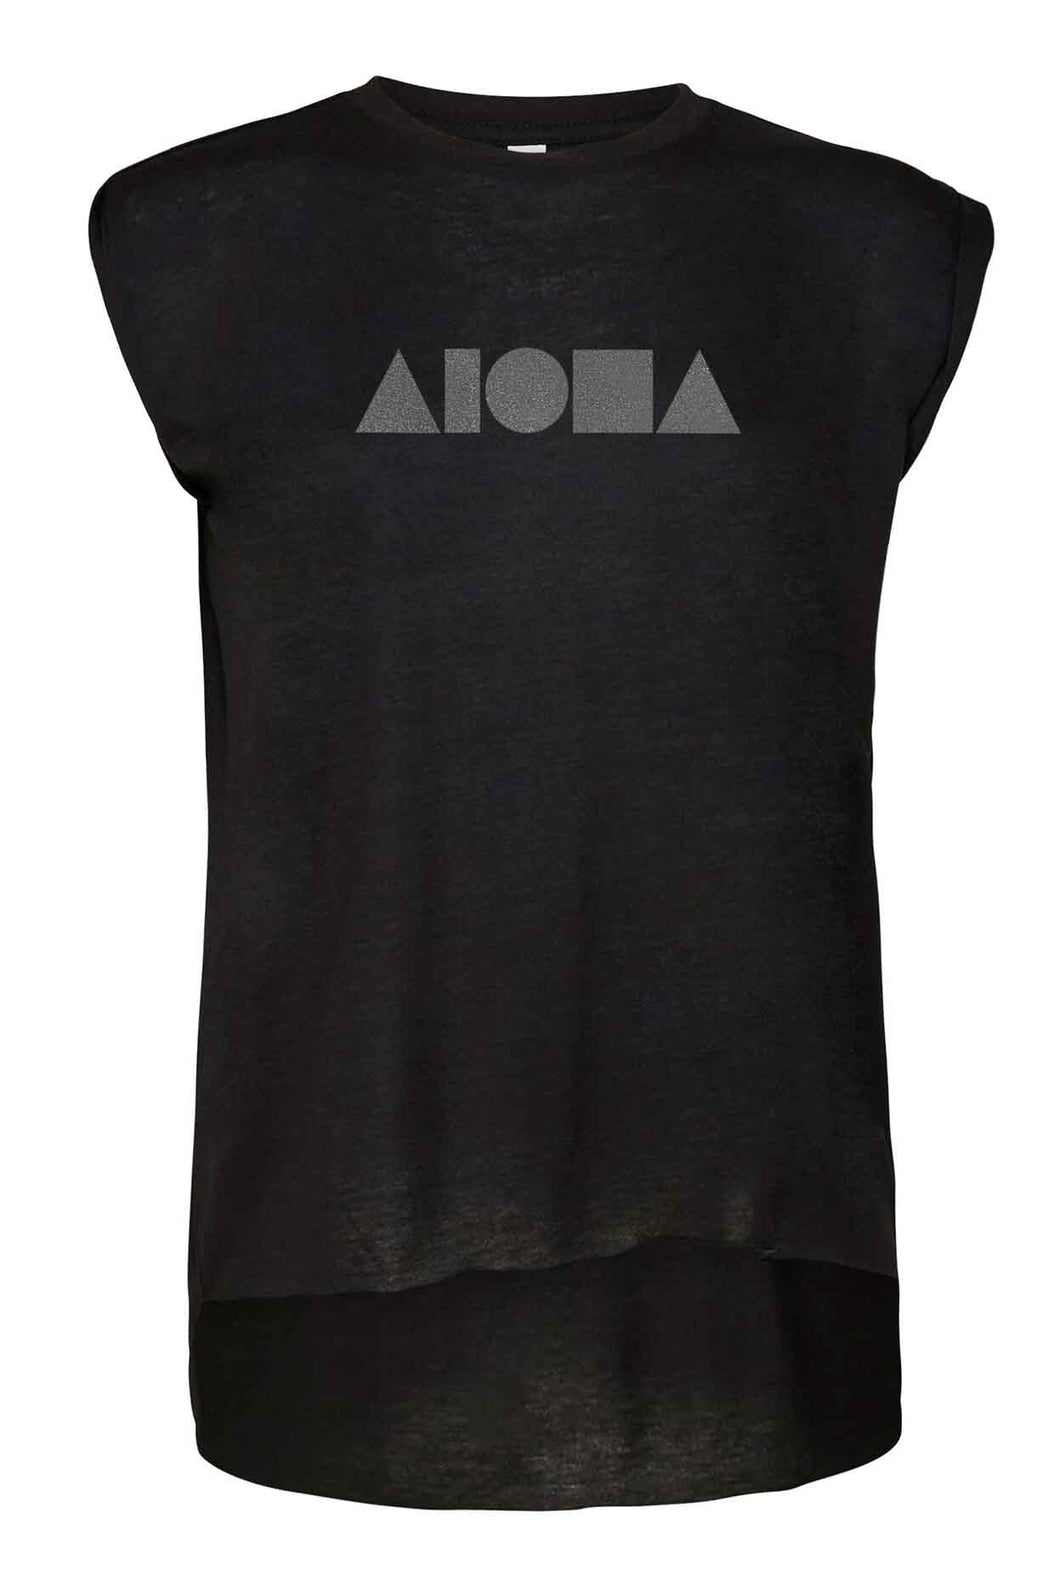 Aloha Shapes Black & Silver Women's Flowy Muscle Tee